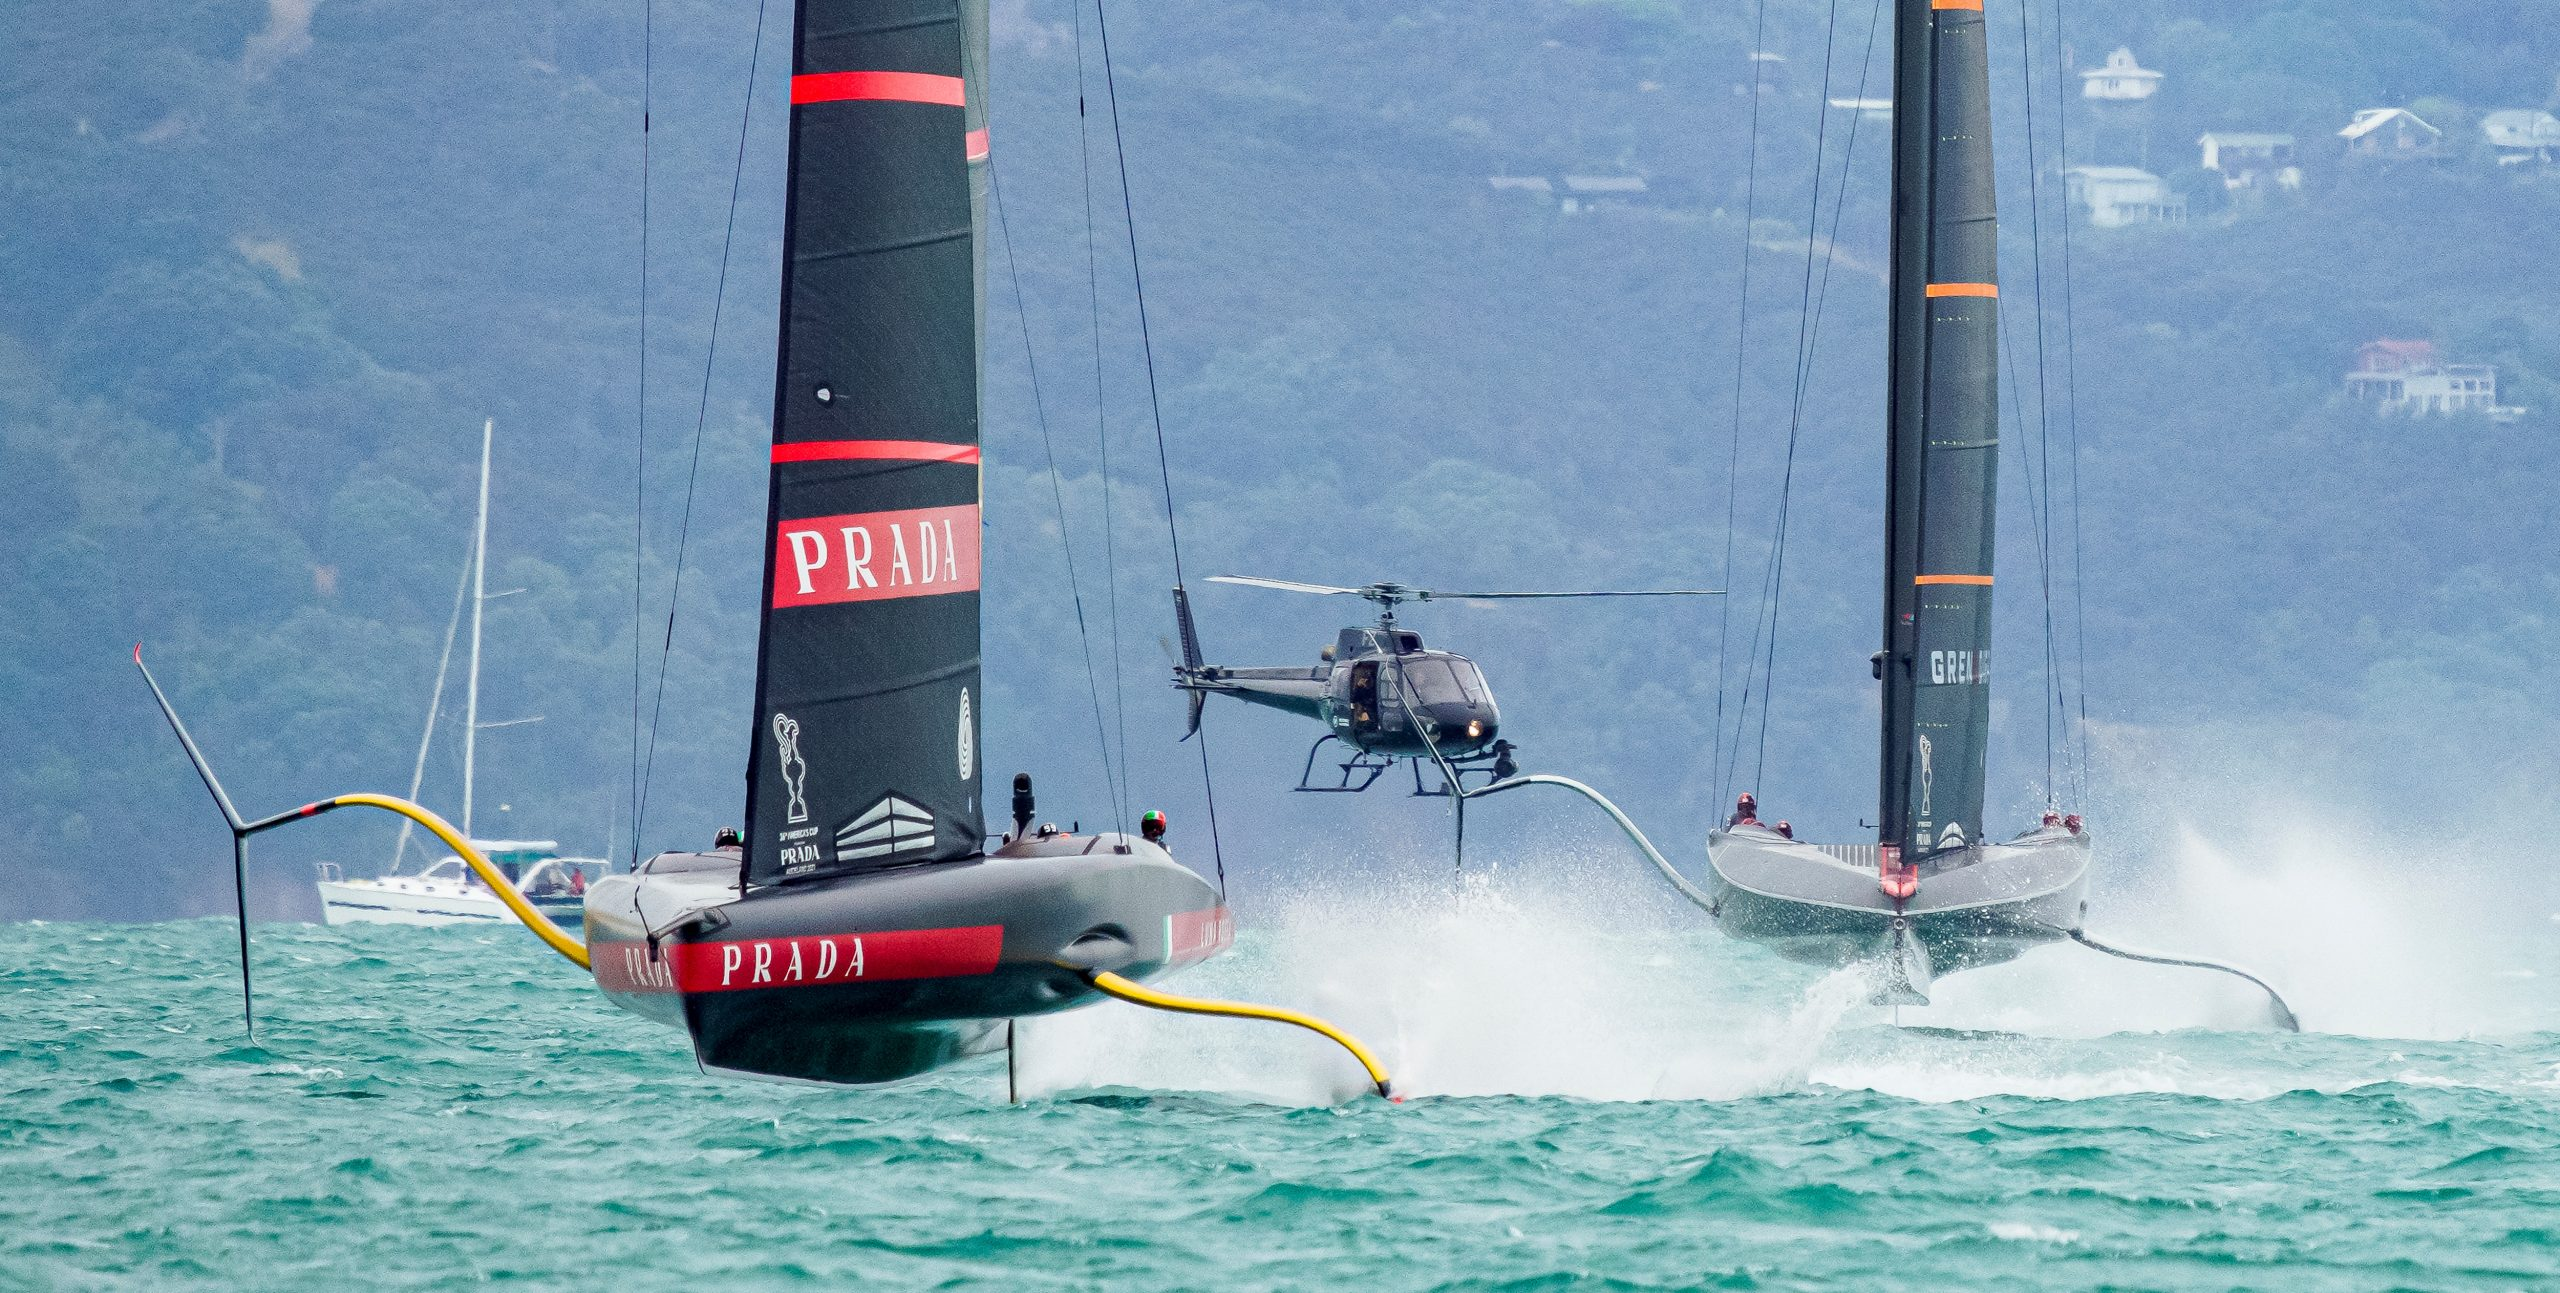 Ouch - four: zip. Luna Rossa coming up roses